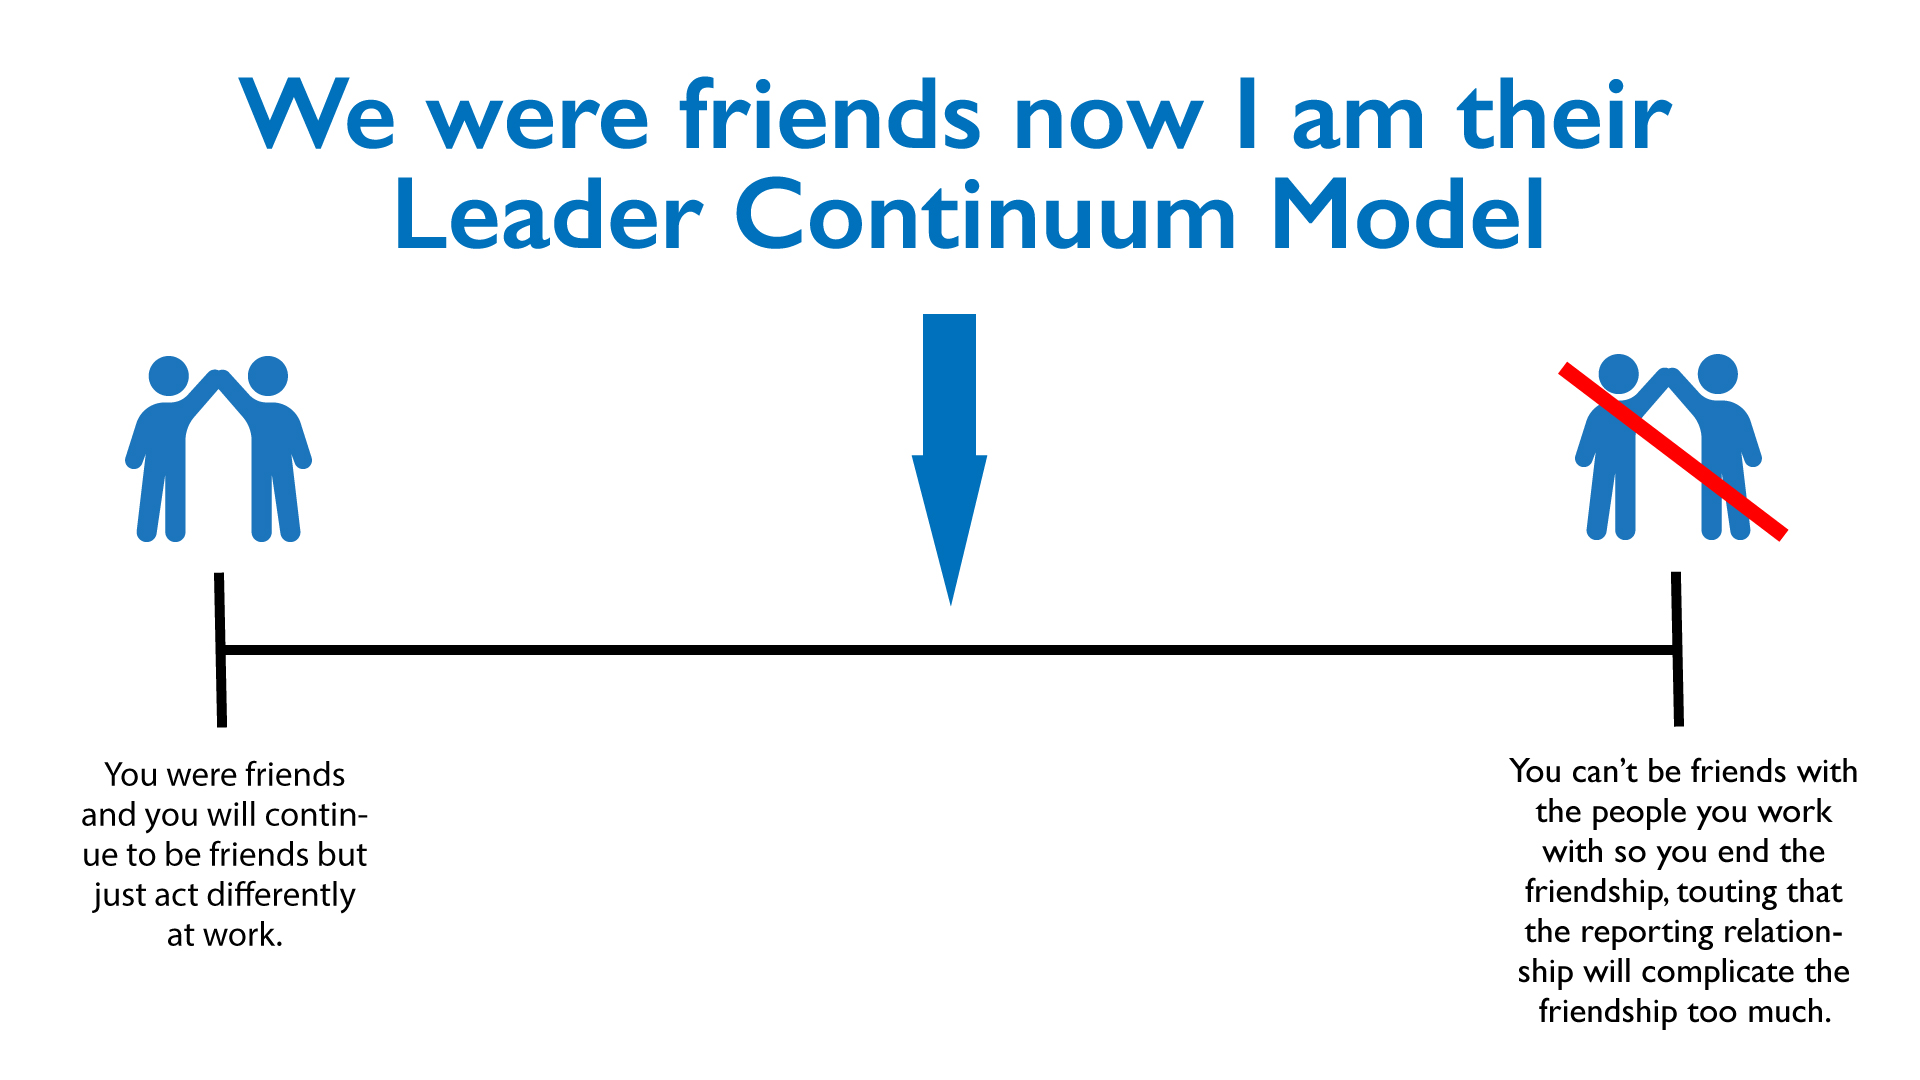 LeaderContinuumModel